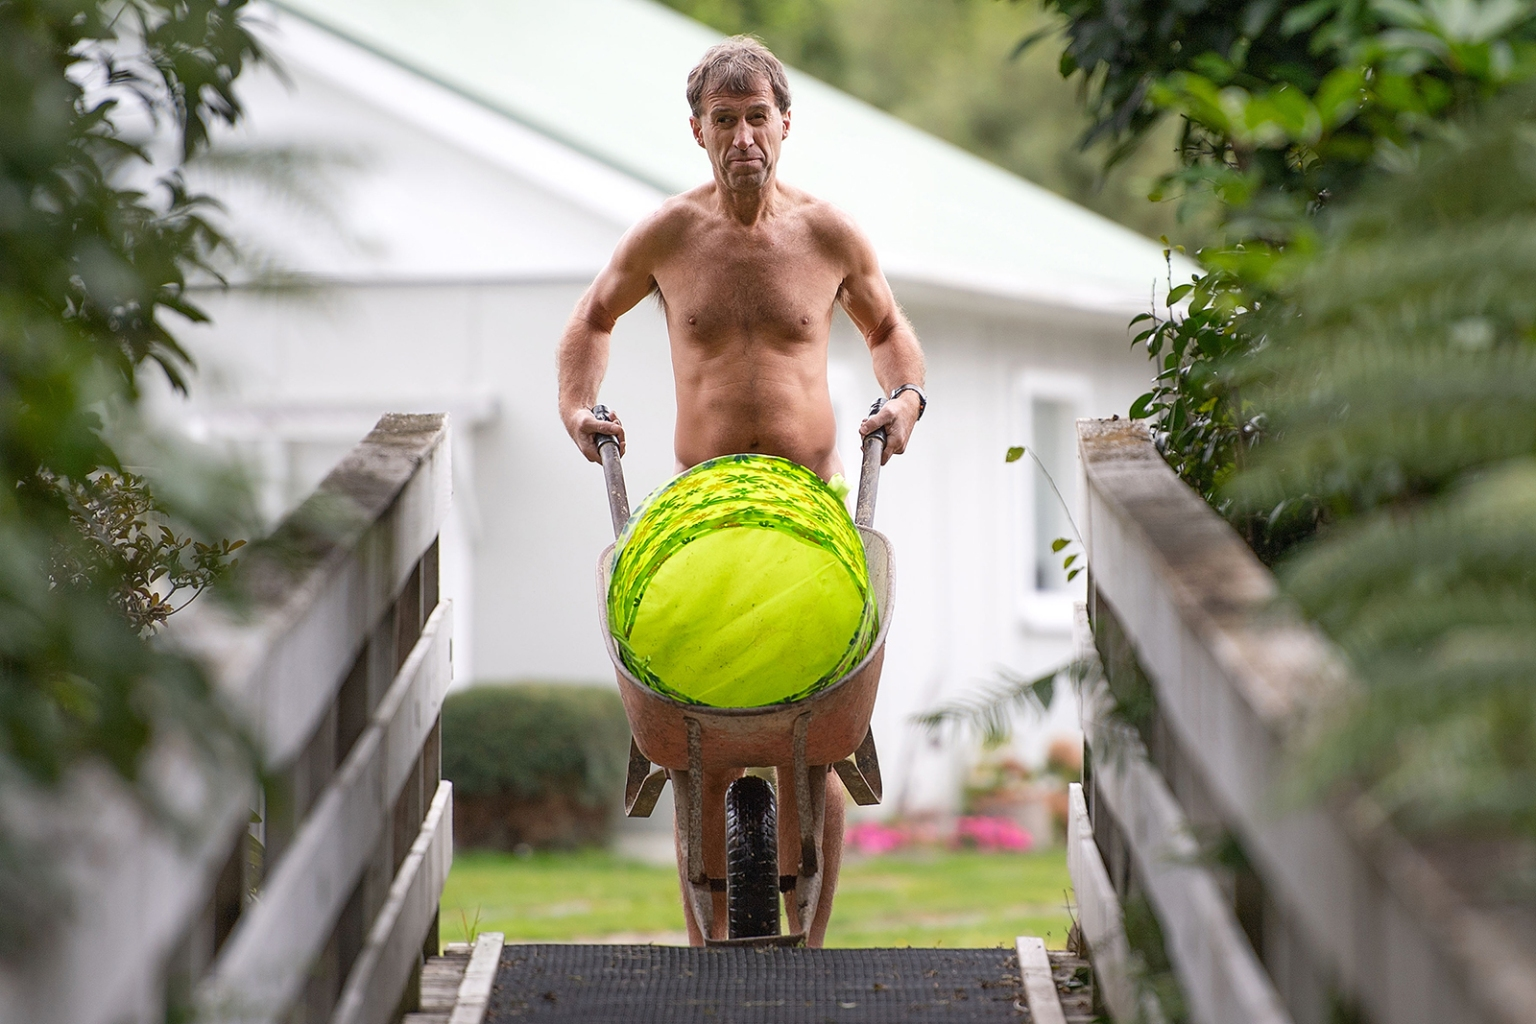 Brent Anderson takes part in World Naked Gardening Day at the Wellington Naturist Club in Upper Hutt, New Zealand, on May 5. A handful of nude participants shook off the chilly weather to take part in the event, which has been held annually around the world since 2005. MARTY MELVILLE/AFP/Getty Images